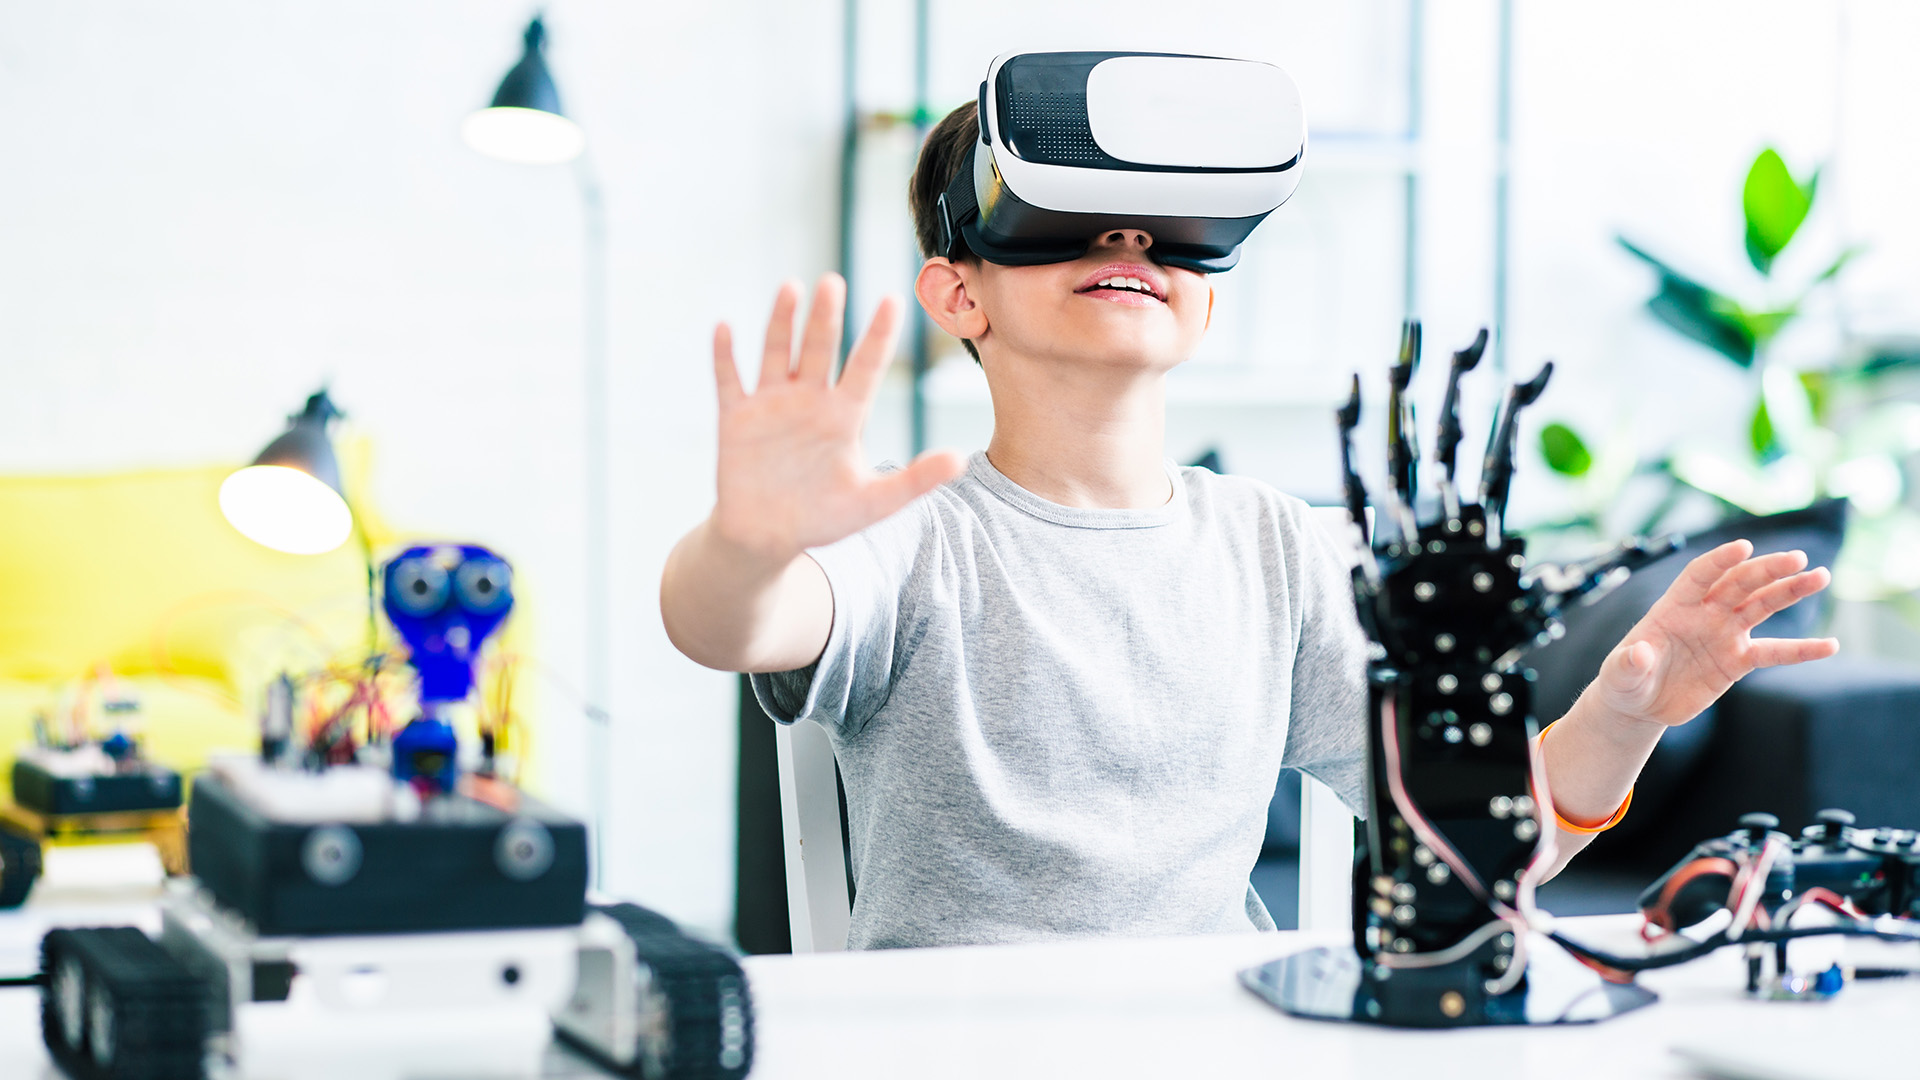 kid is using virtual reality for education and experimenting with robotic devices